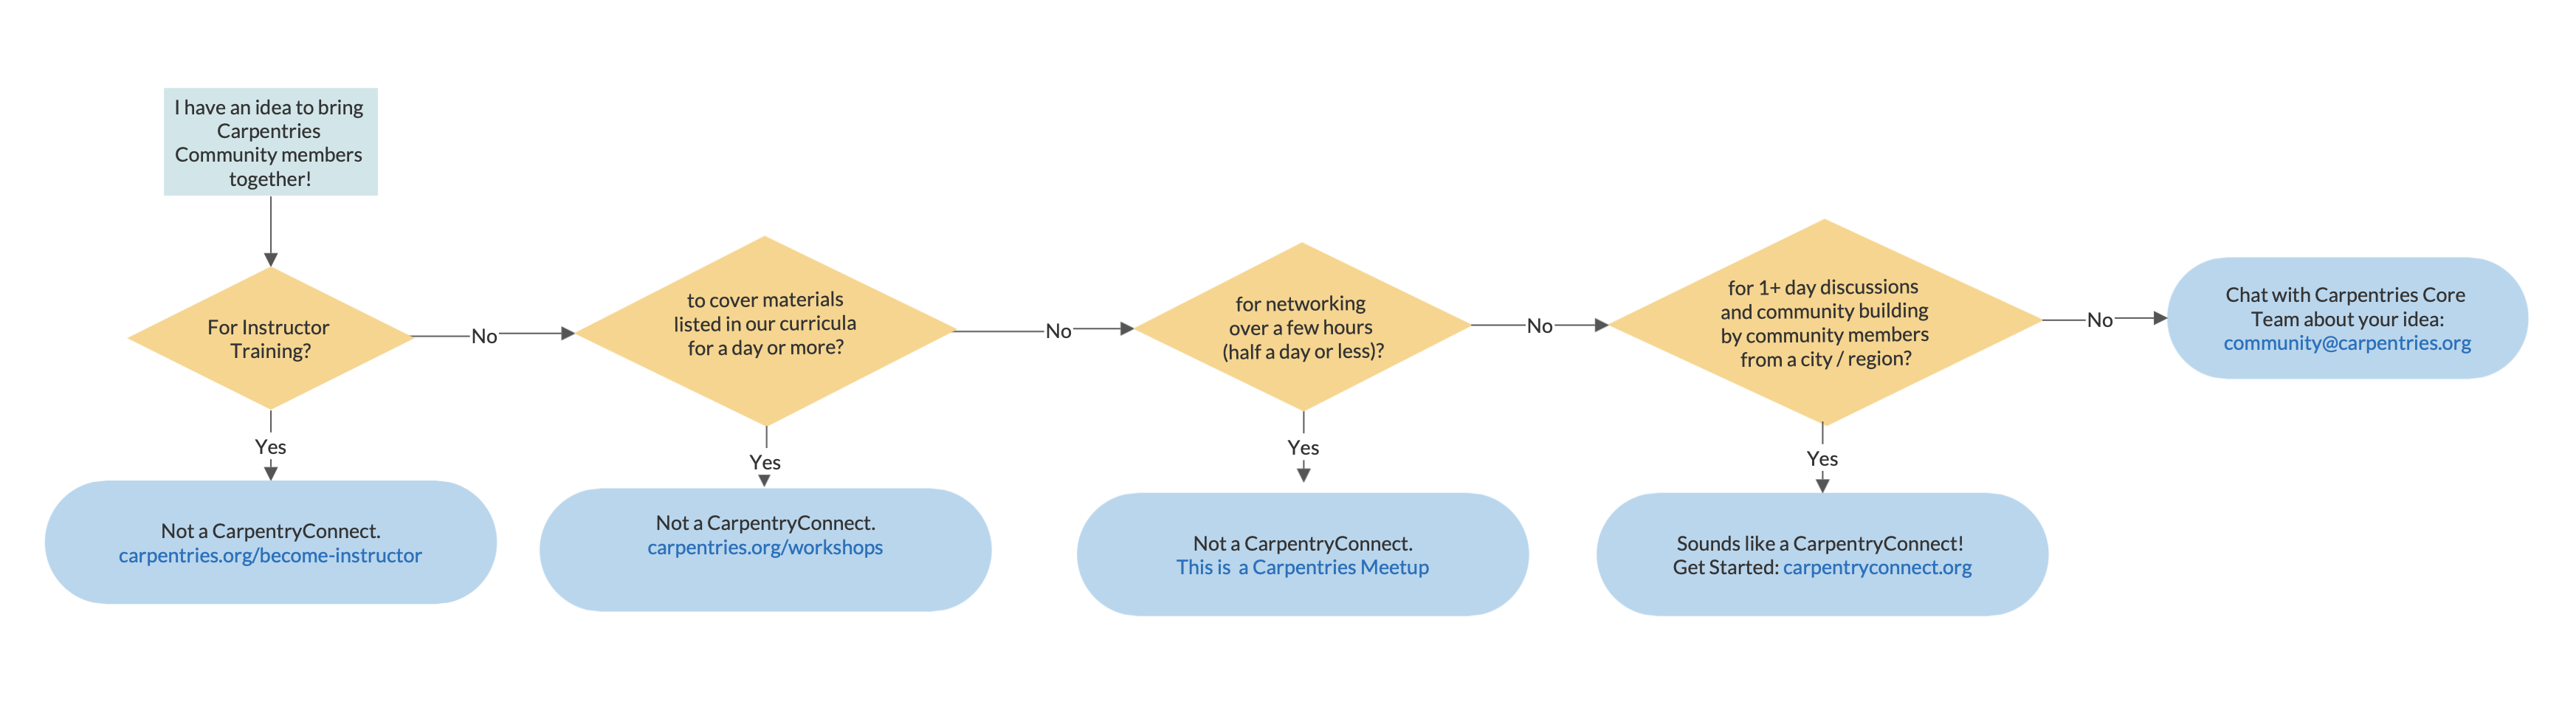 carpentryconnect or not flowchart